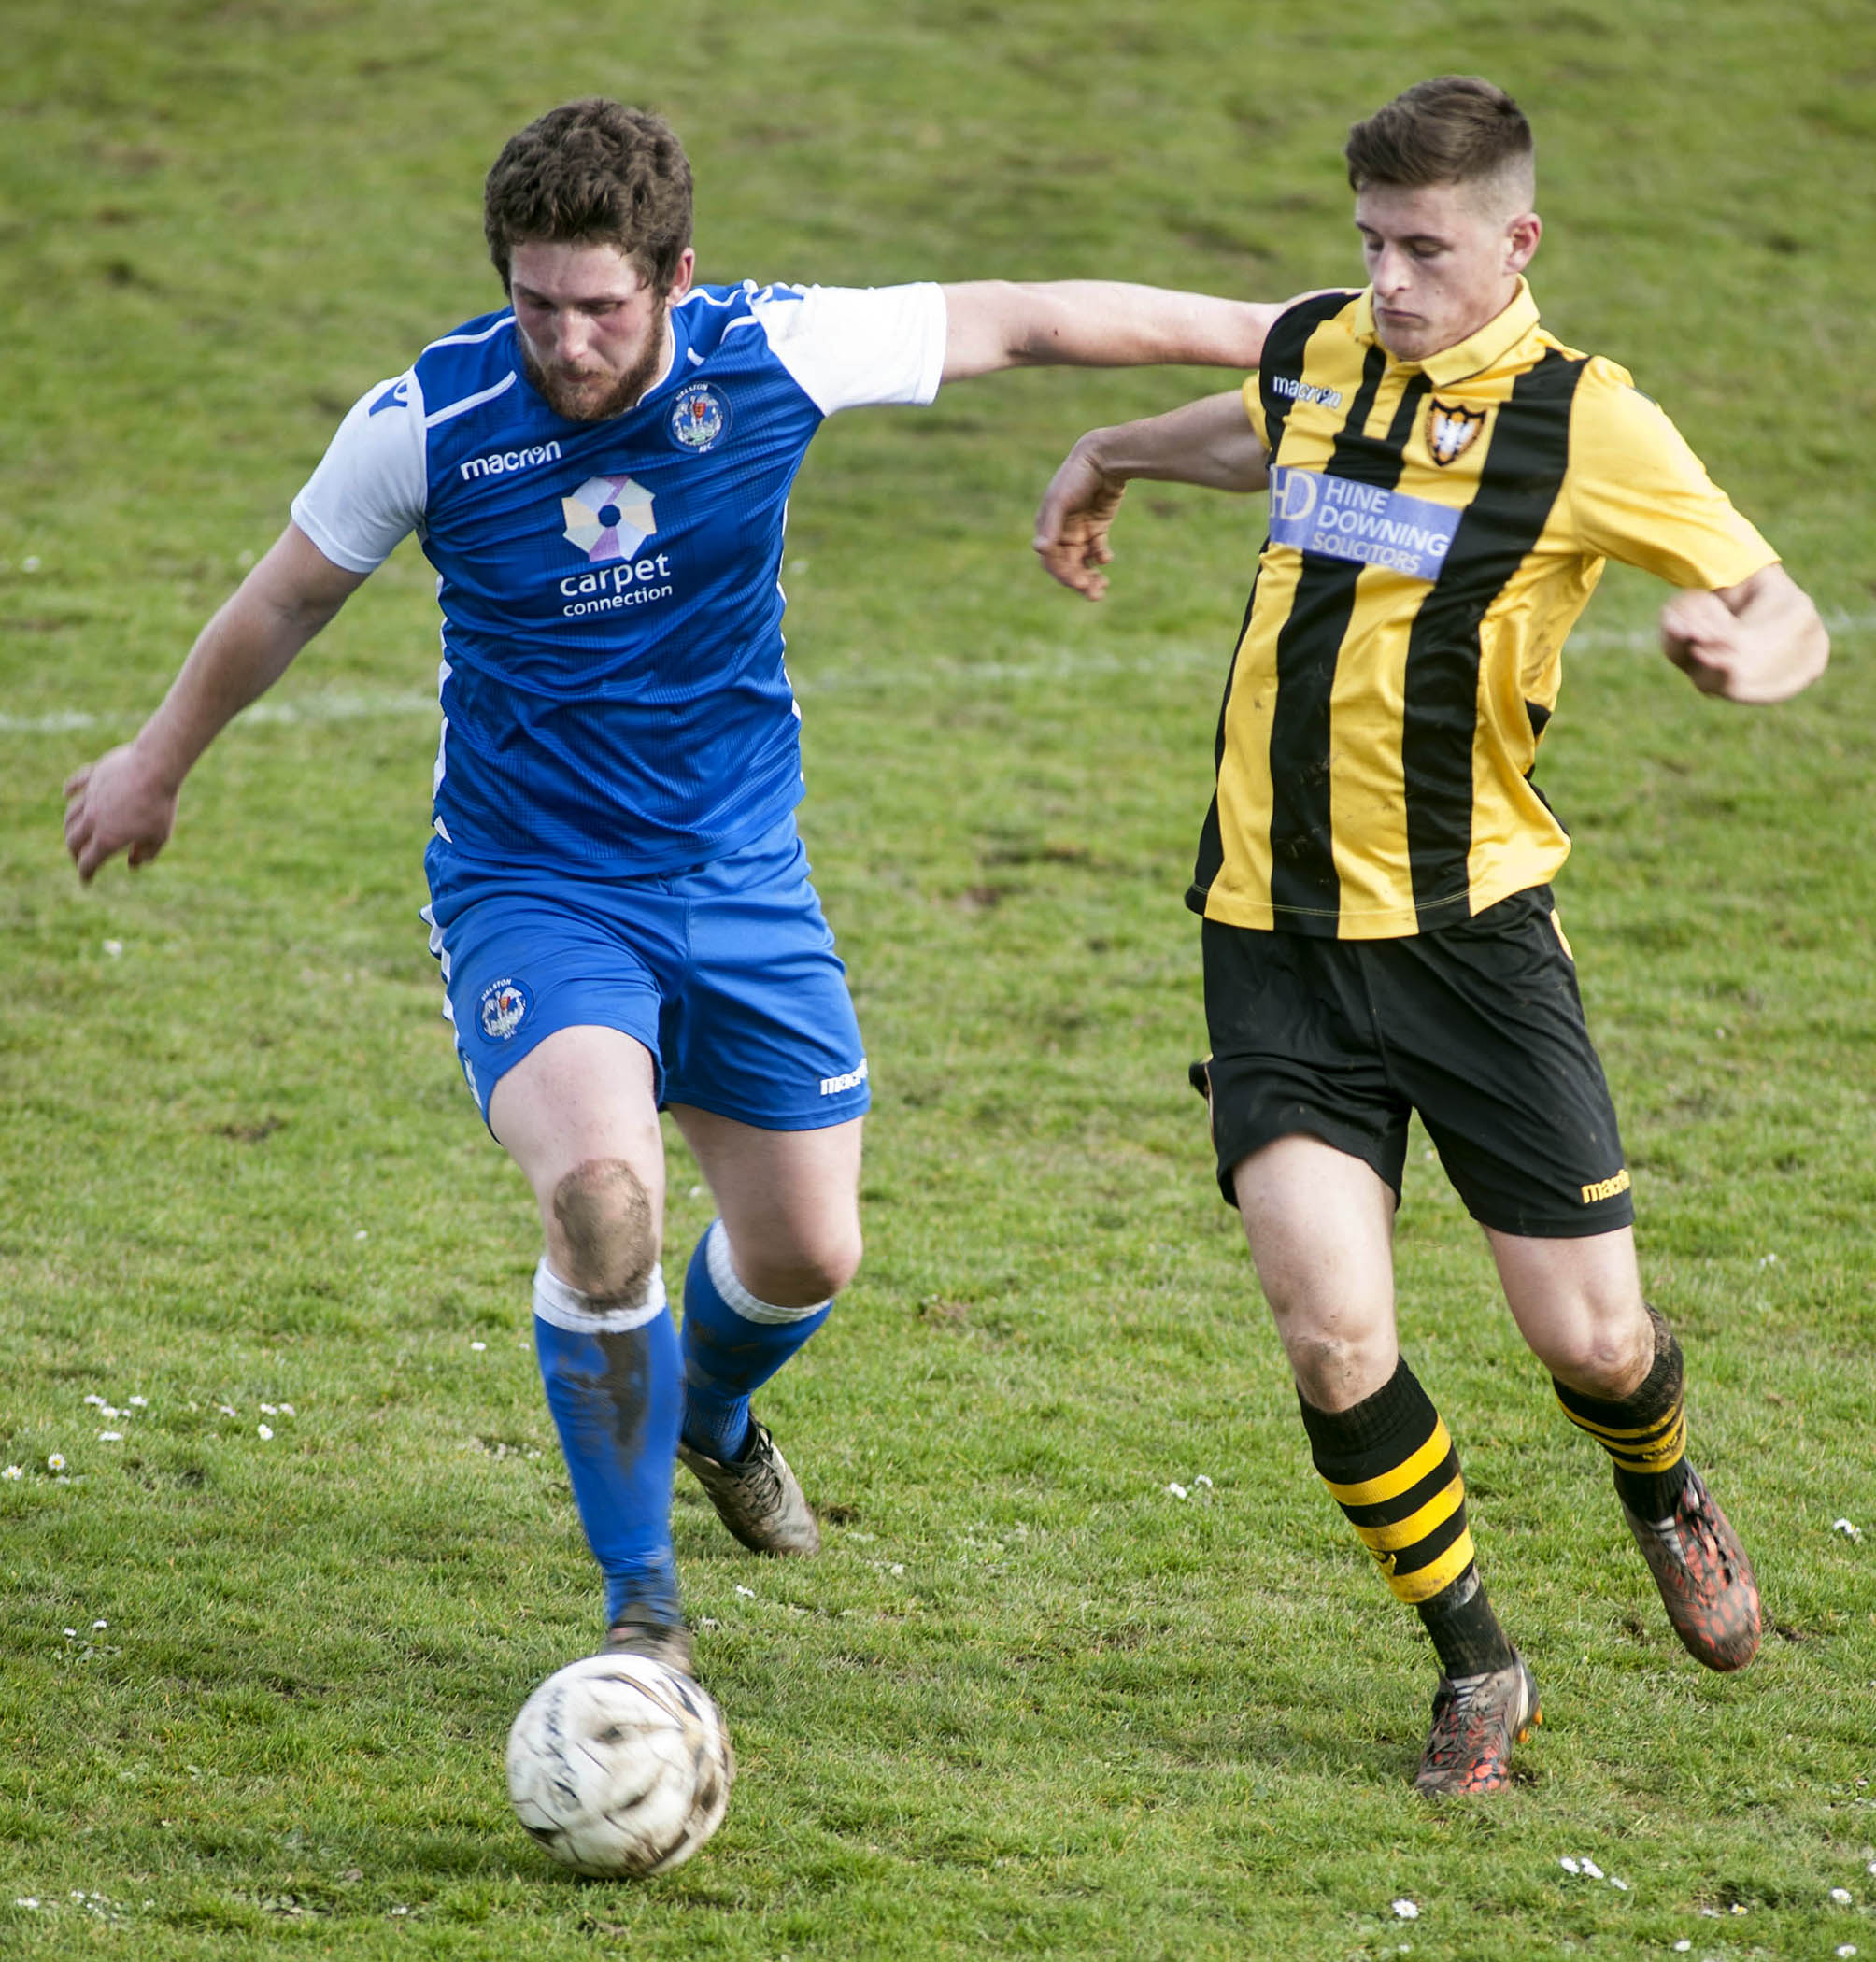 Helston Athletic midfielder Charlie Young (left) goes head-to-head with Falmouth Town's David Broglino (right) during Falmouth's 3-1 win at Bickland Park in March